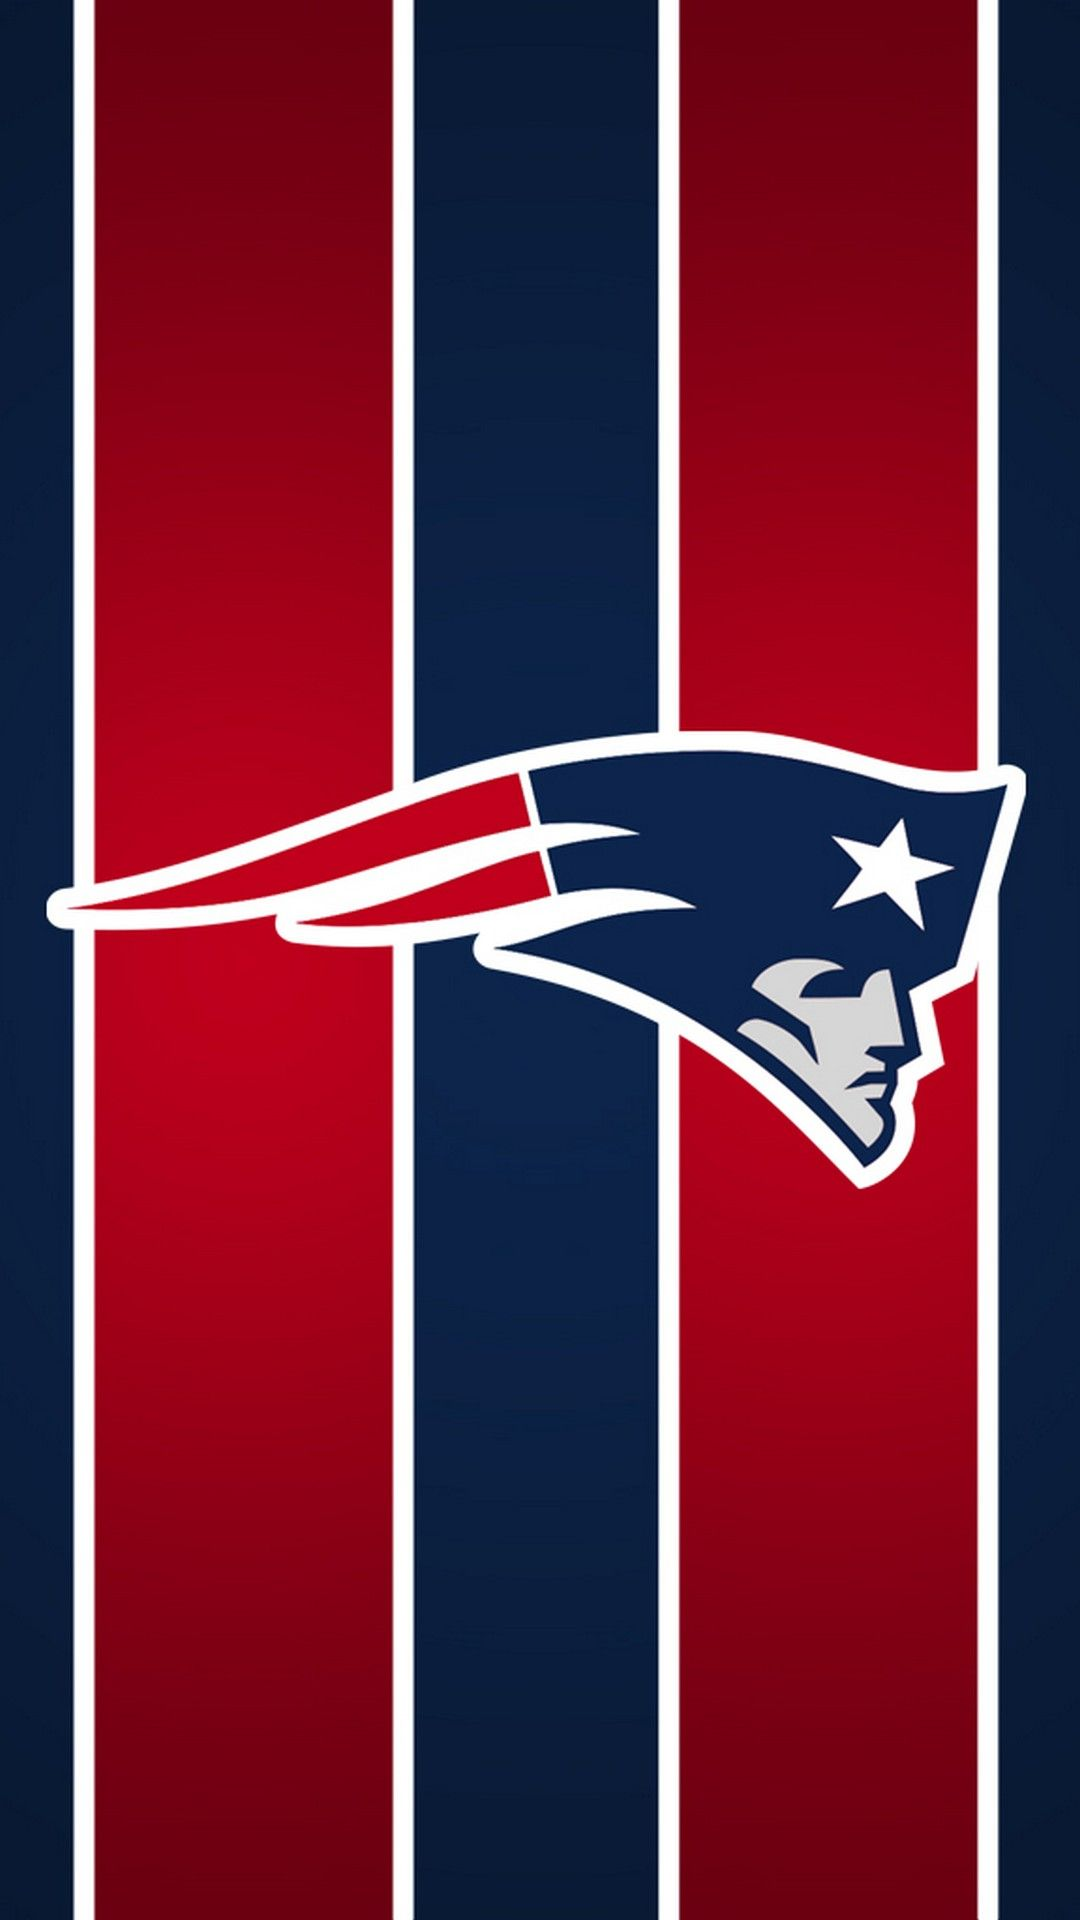 New England Patriots Iphone Xs Wallpaper Best Nfl Wallpaper New England Patriots Wallpaper New England Patriots Logo New England Patriots